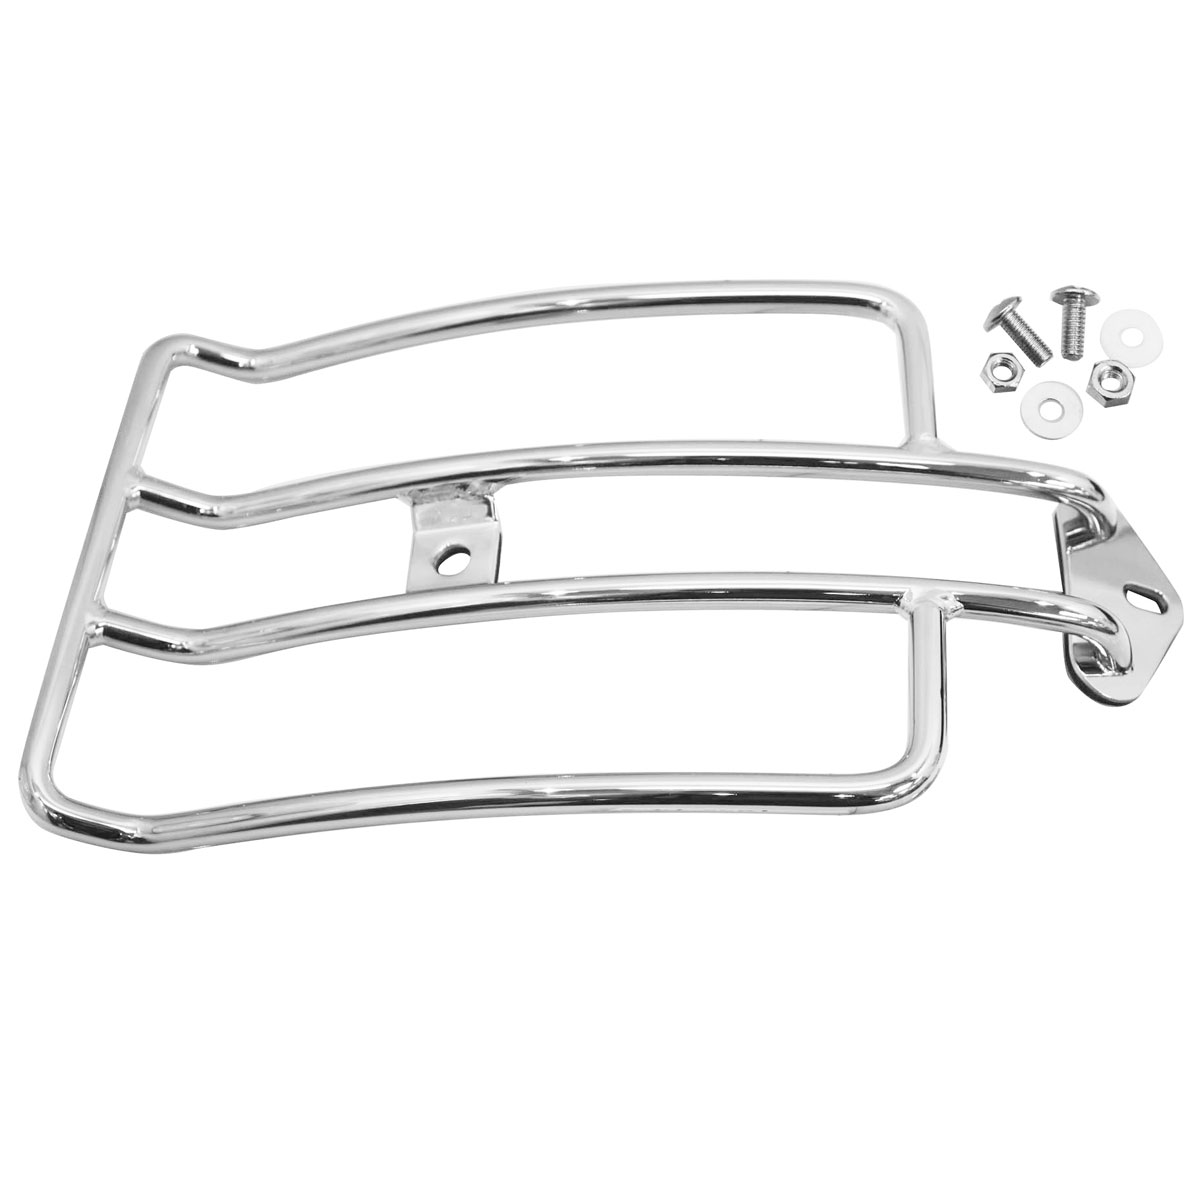 V-Twin Manufacturing Chrome Luggage Rack for FXST Models with 200 Tire